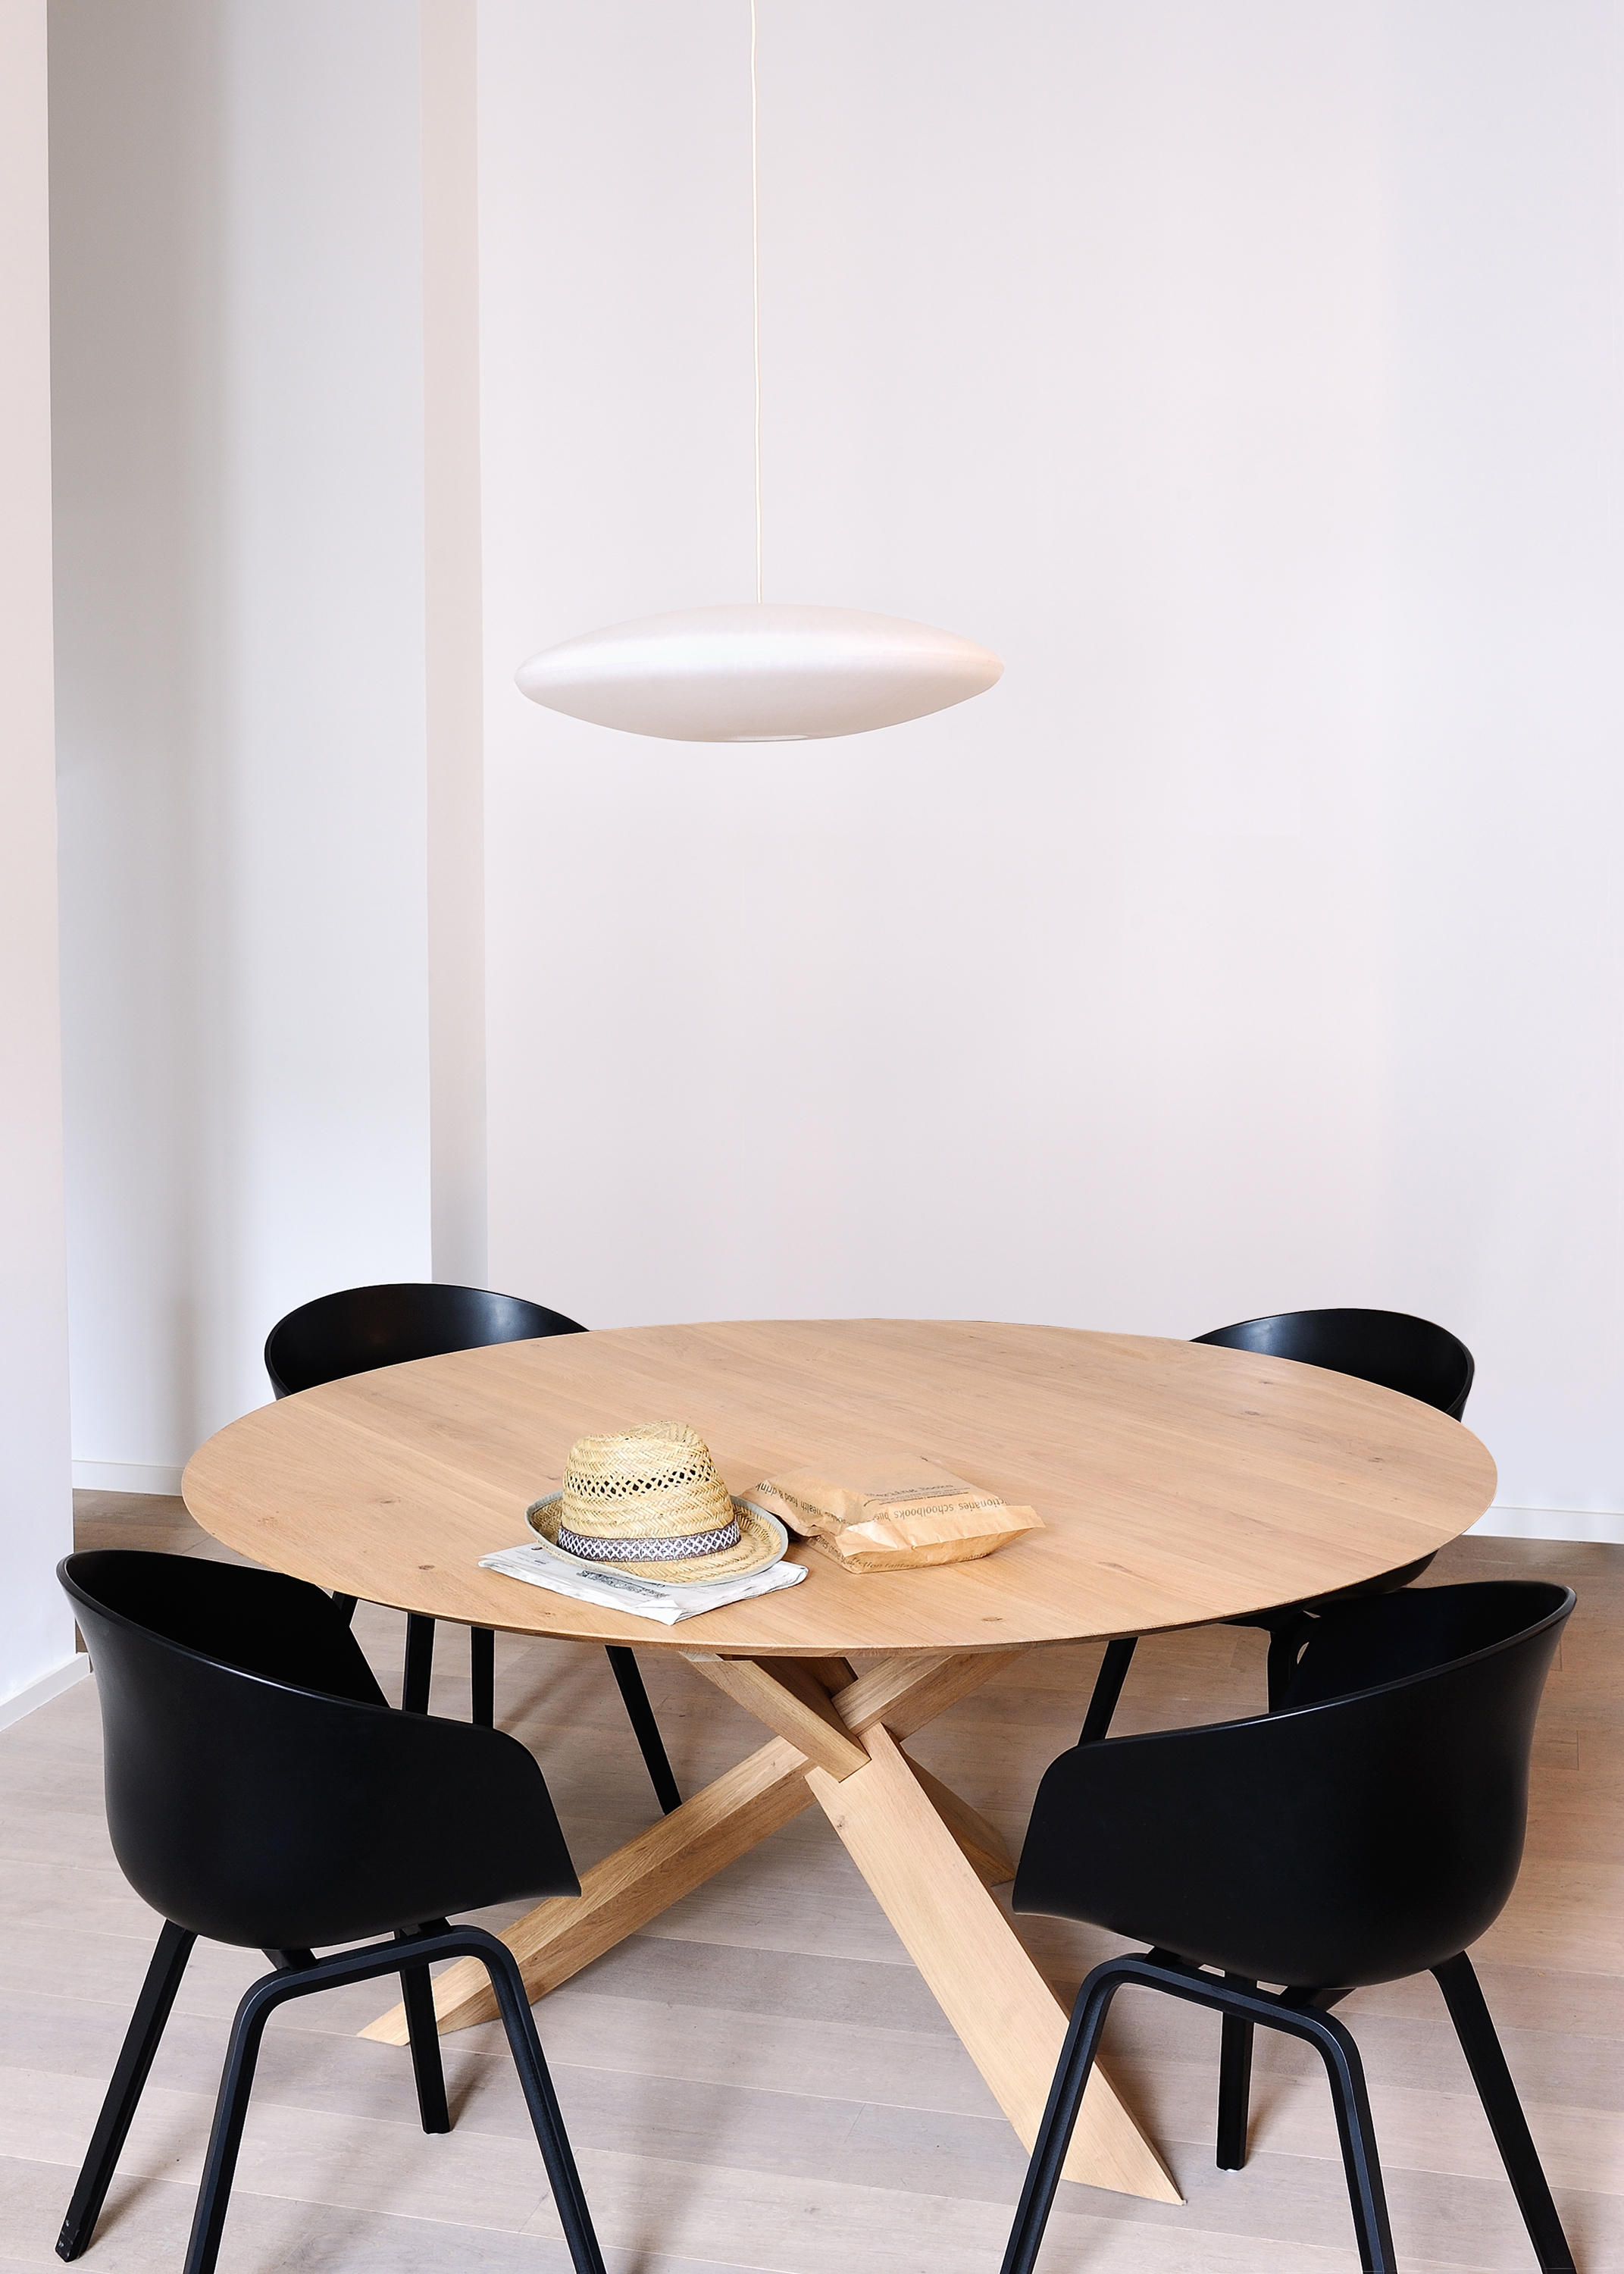 oak circle dining table - dining tables from ethnicraft | architonic Circular Dining Table